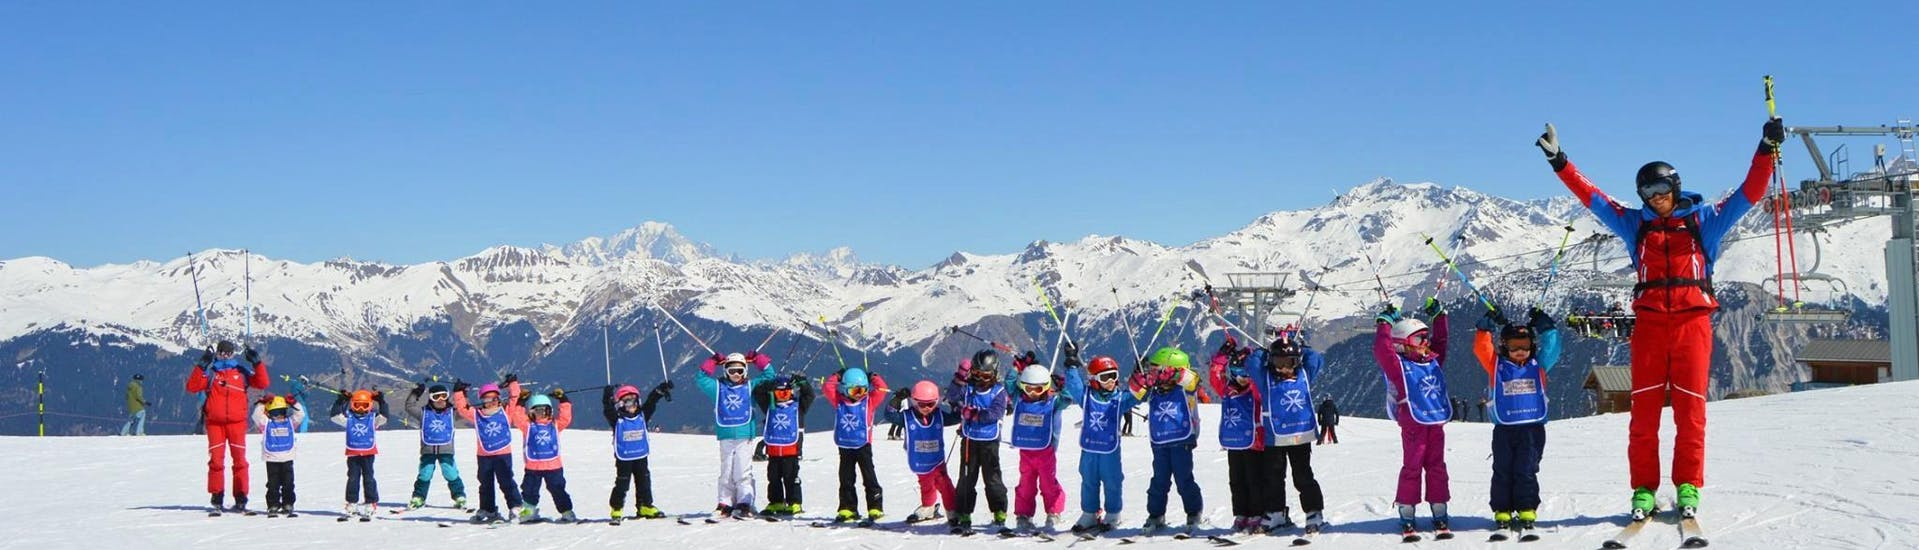 kids-ski-lessons-super-7-esf-courchevel-village-hero